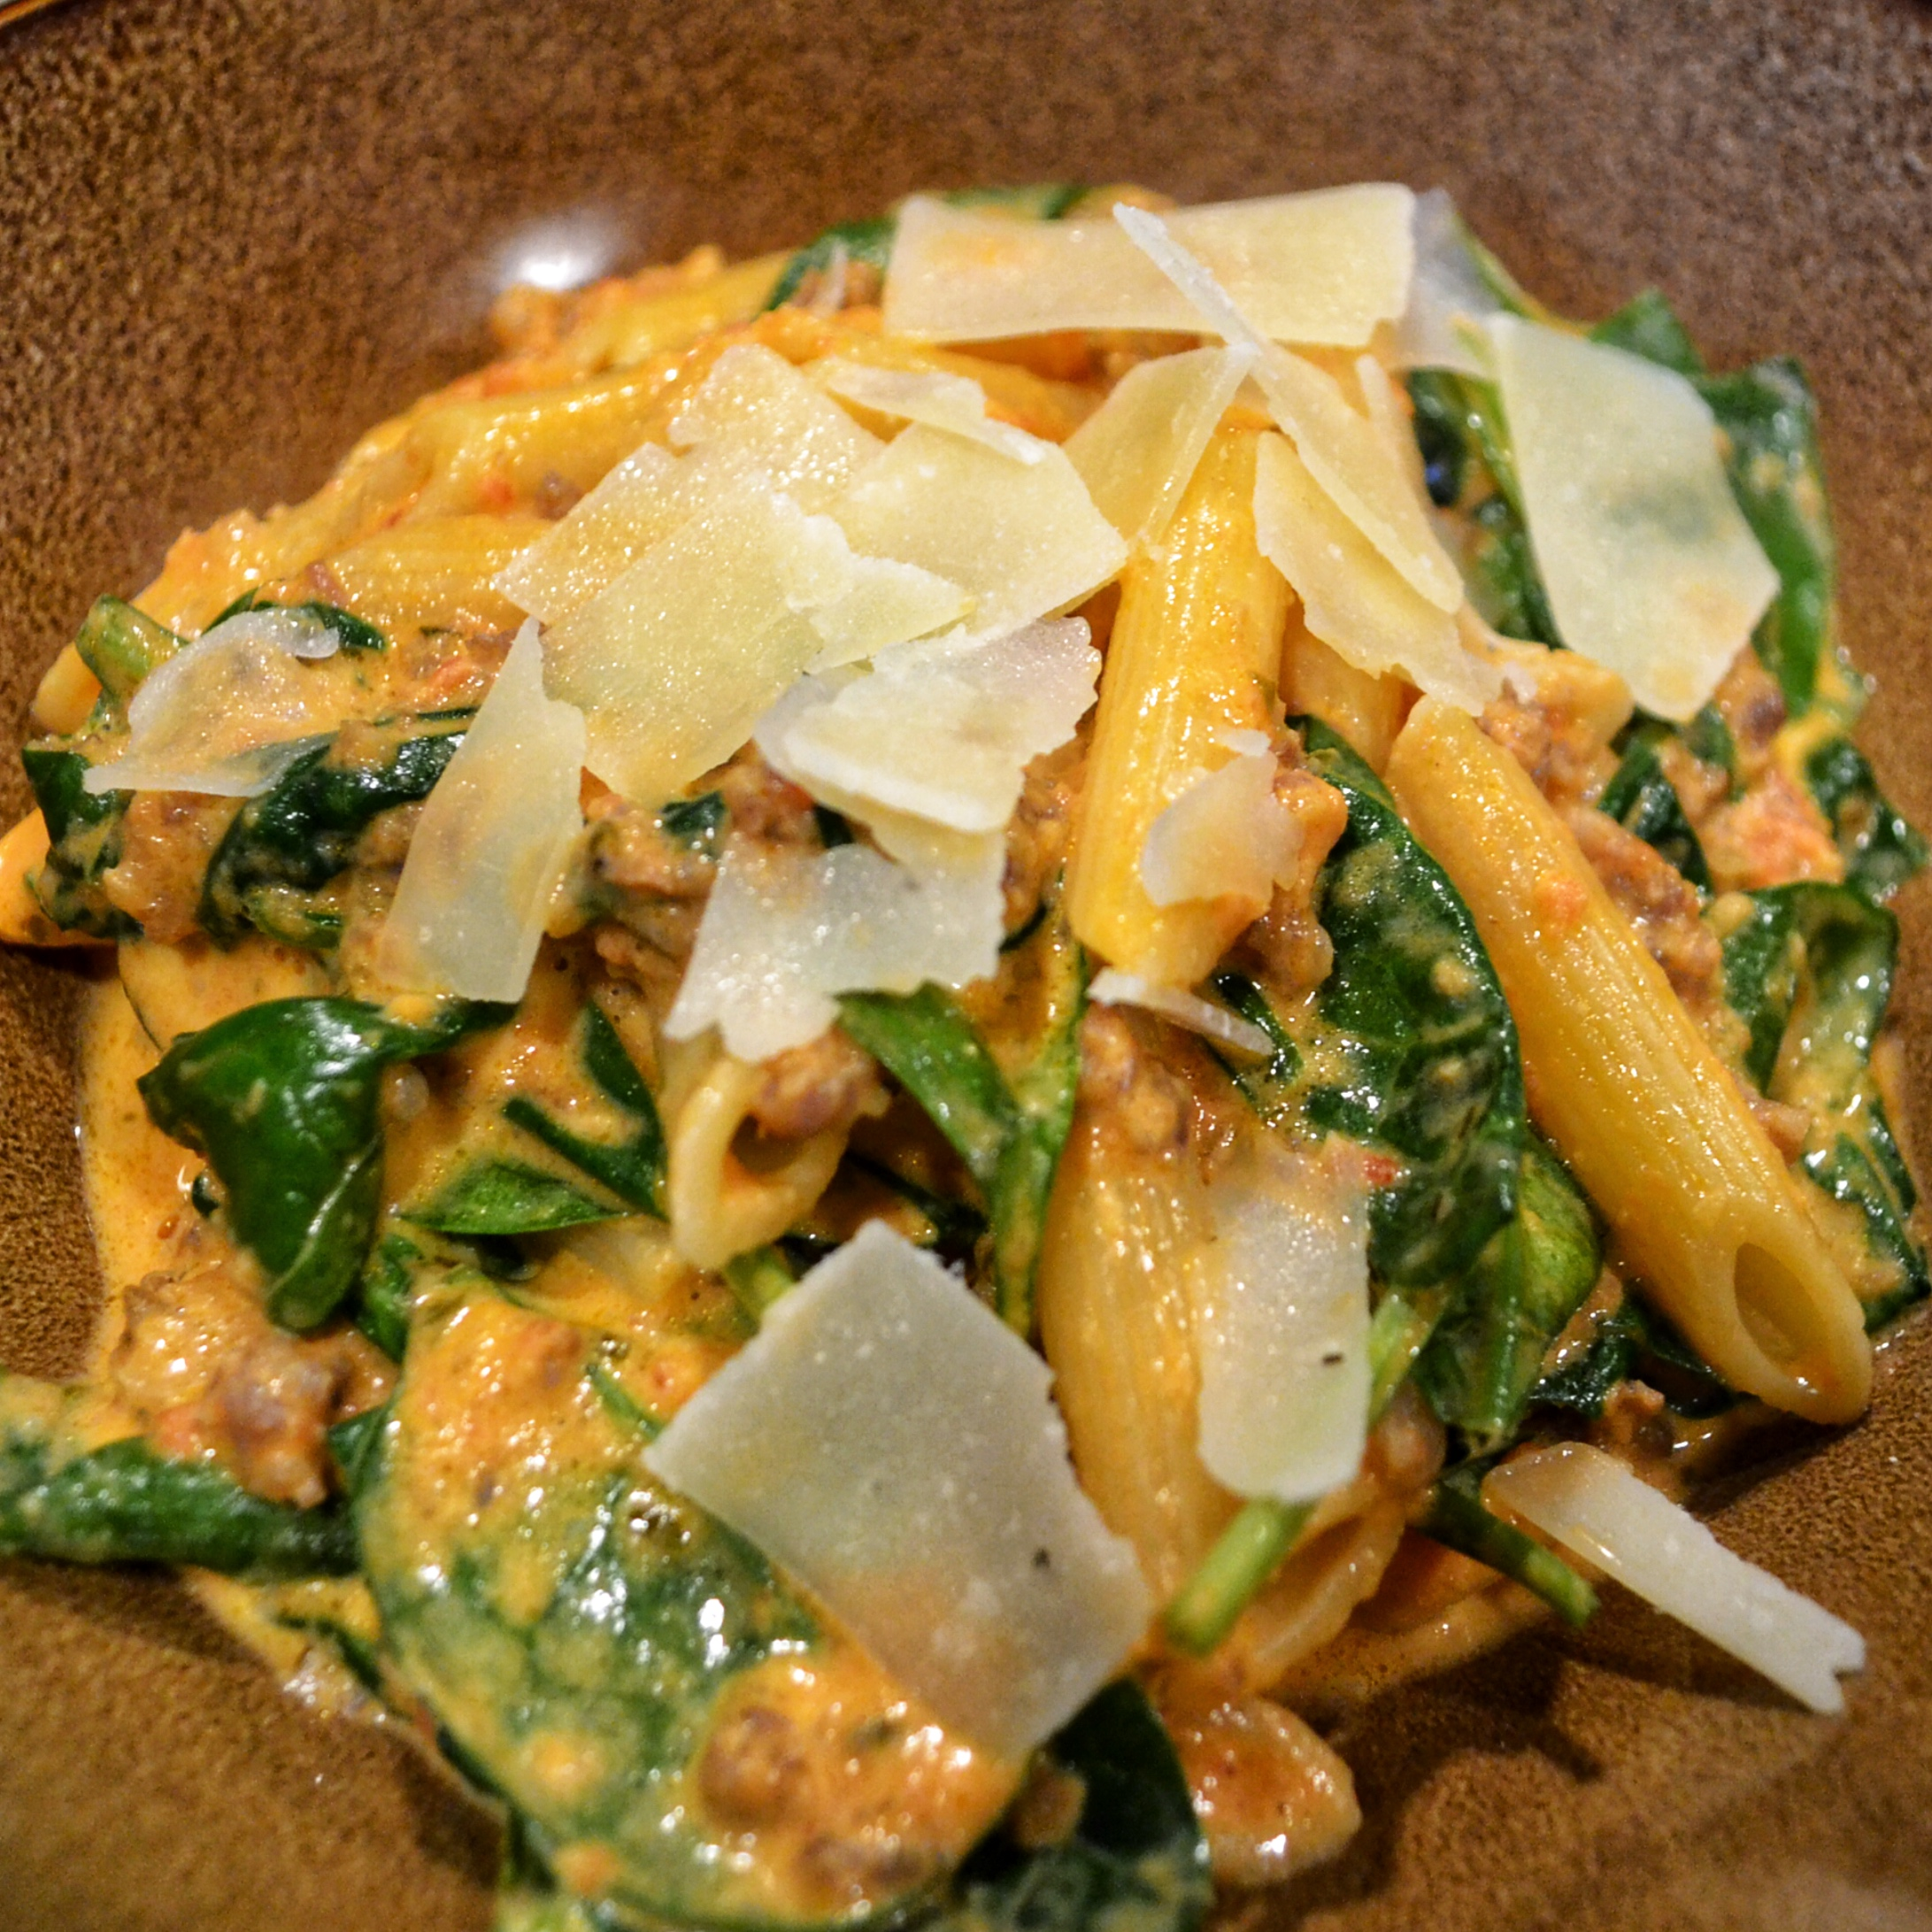 Creamy Italian Sausage and Tomato Sauce with Penne Pasta or Zoodles Recipe